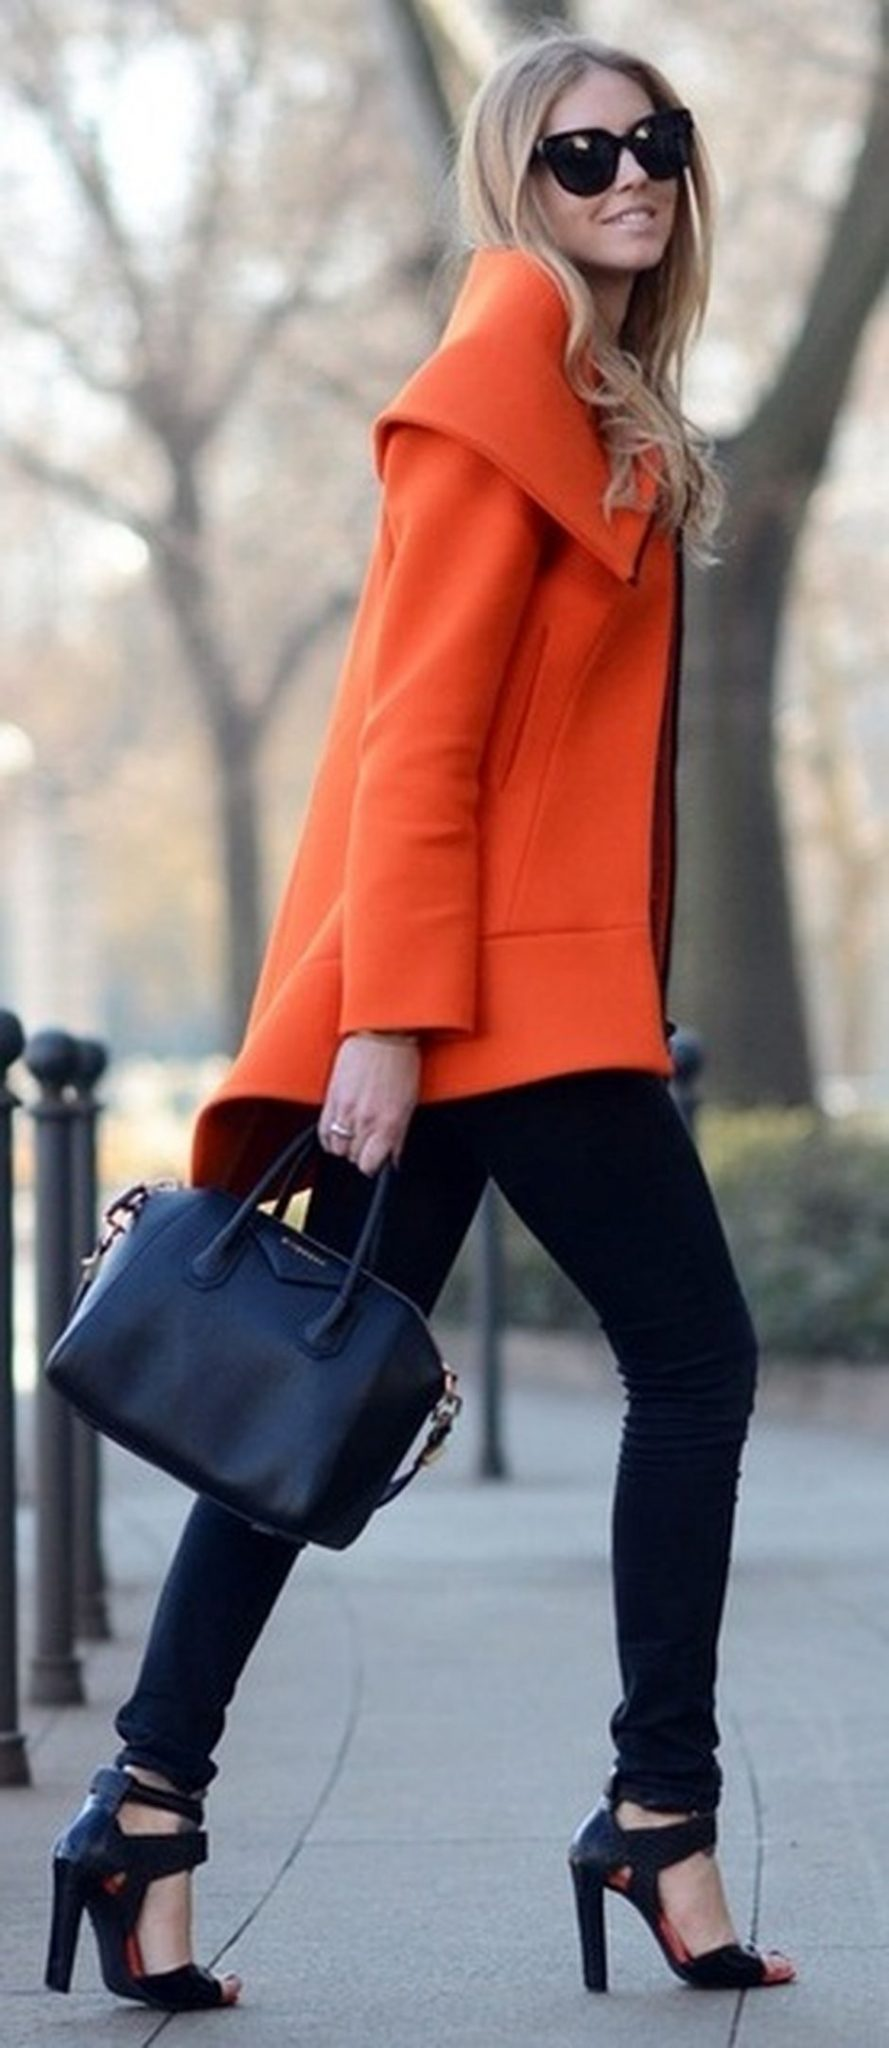 55 Orange Outfit Ideas That Make You Look Young and Fresh 26